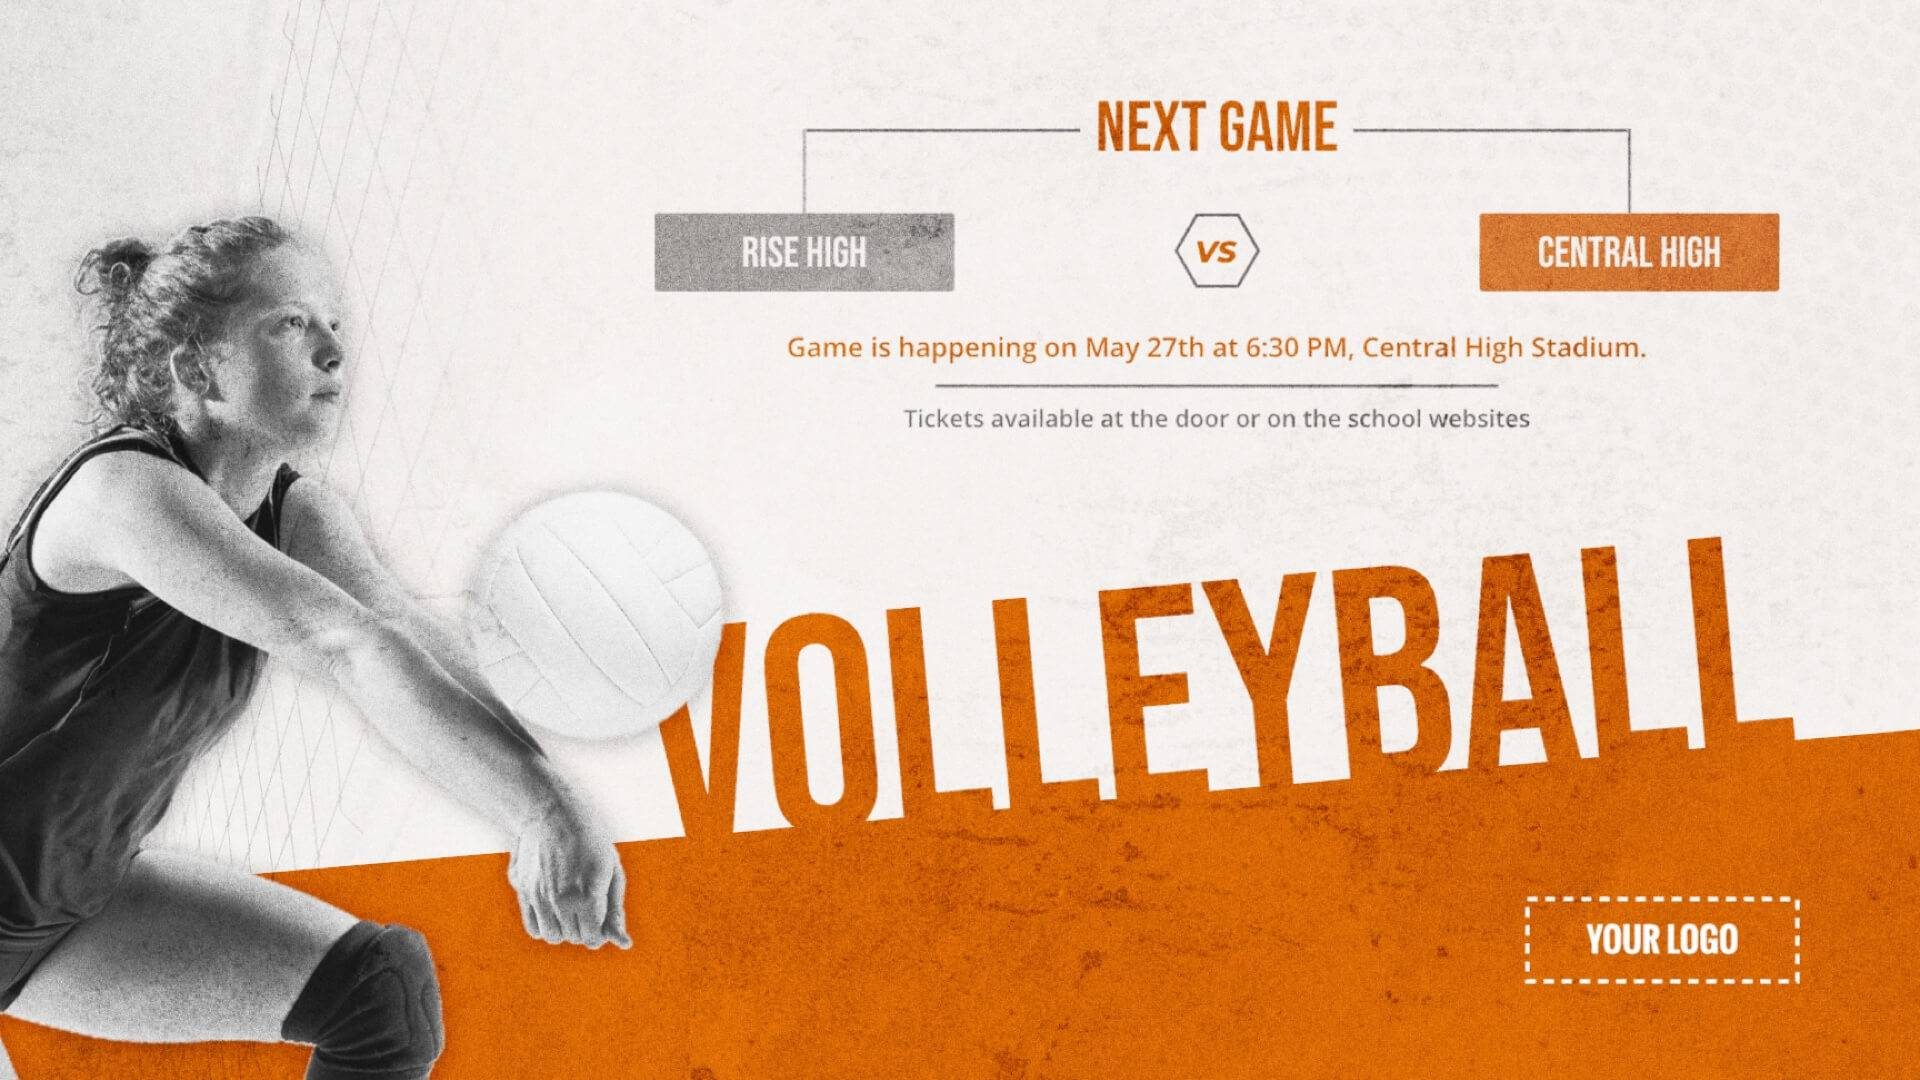 Volleyball Game - Sports Digital Signage Template